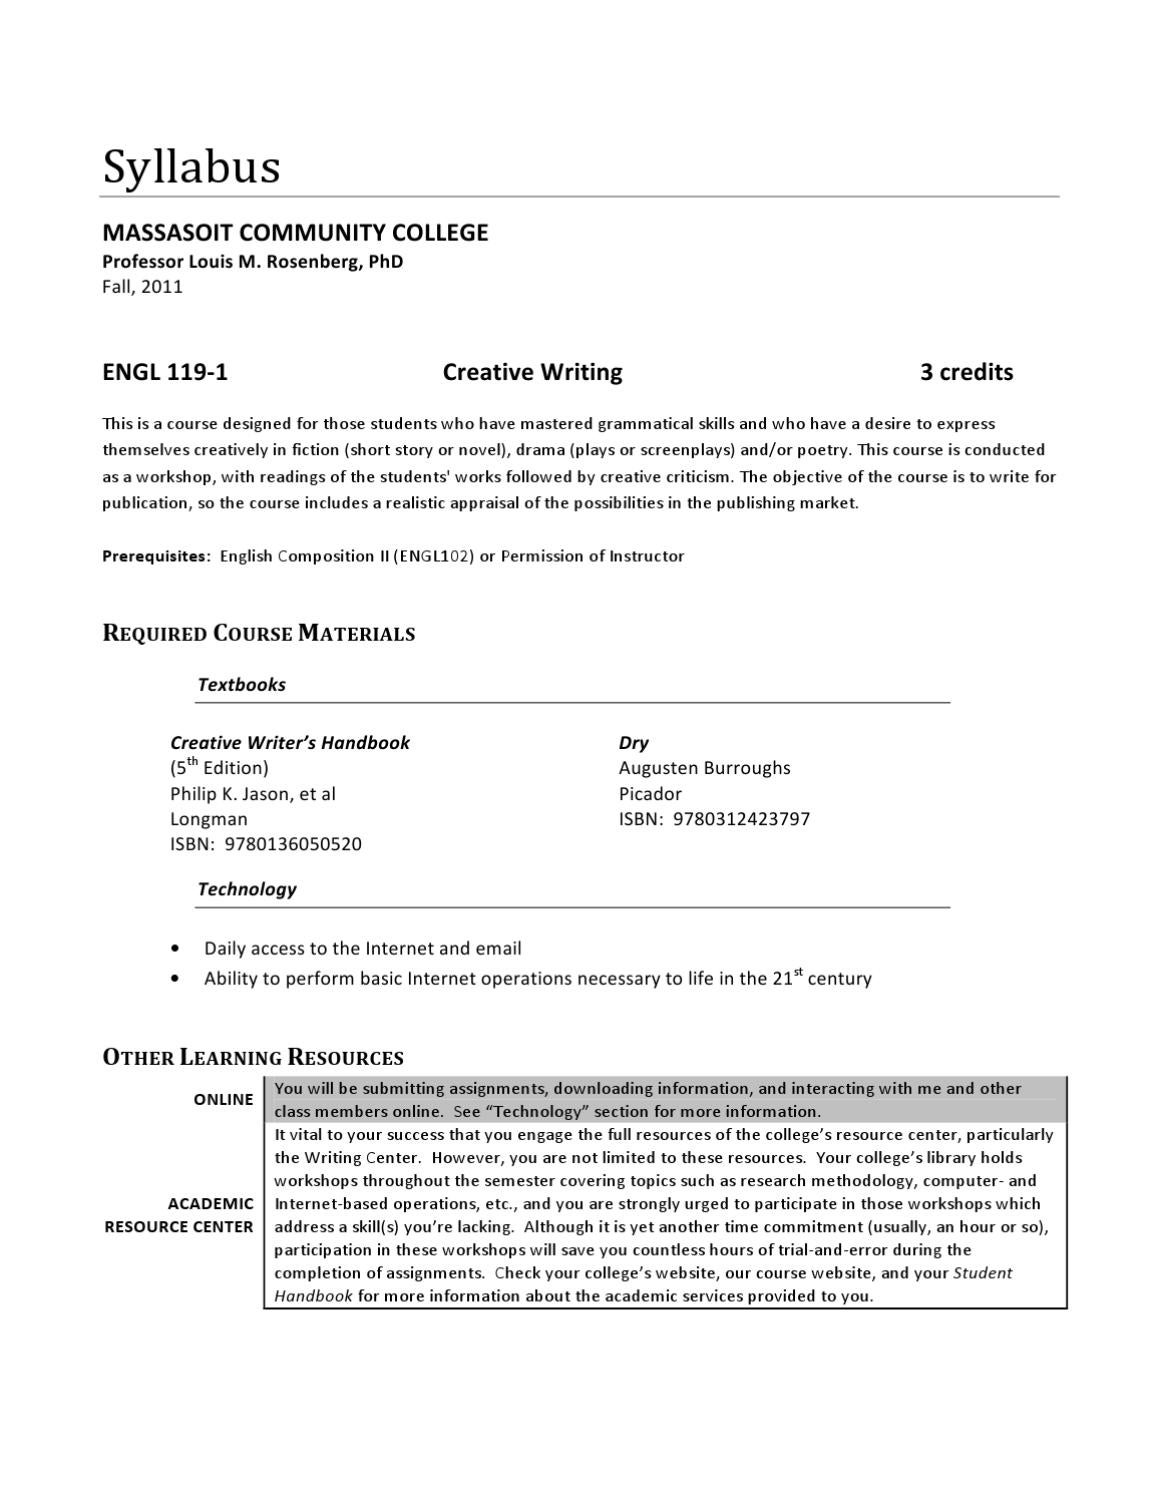 bmm creative writing syllabus